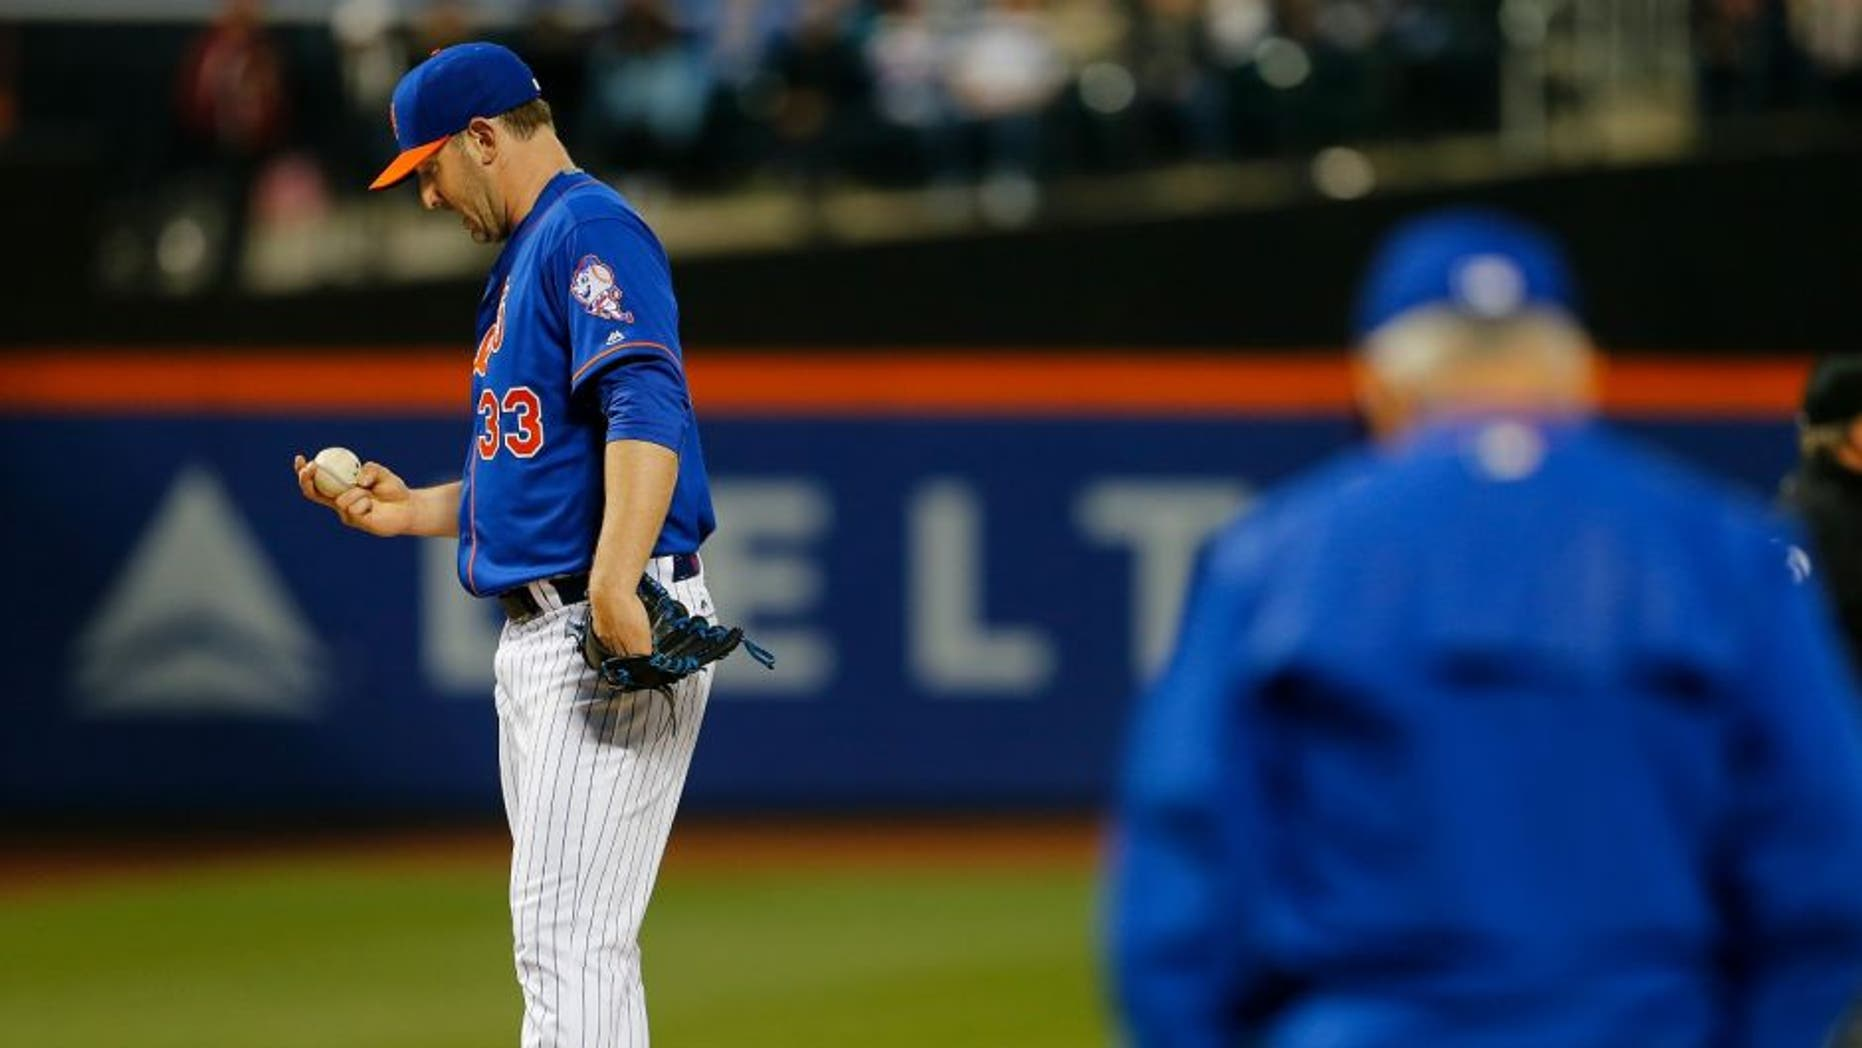 NEW YORK, NY - MAY 19: Pitcher Matt Harvey #33 of the New York Mets stares at the ball as manager Terry Collins #10 comes out to relieve him during the third inning of a game at Citi Field on May 19, 2016 in the Flushing neighborhood of the Queens borough of New York City. (Photo by Rich Schultz/Getty Images)